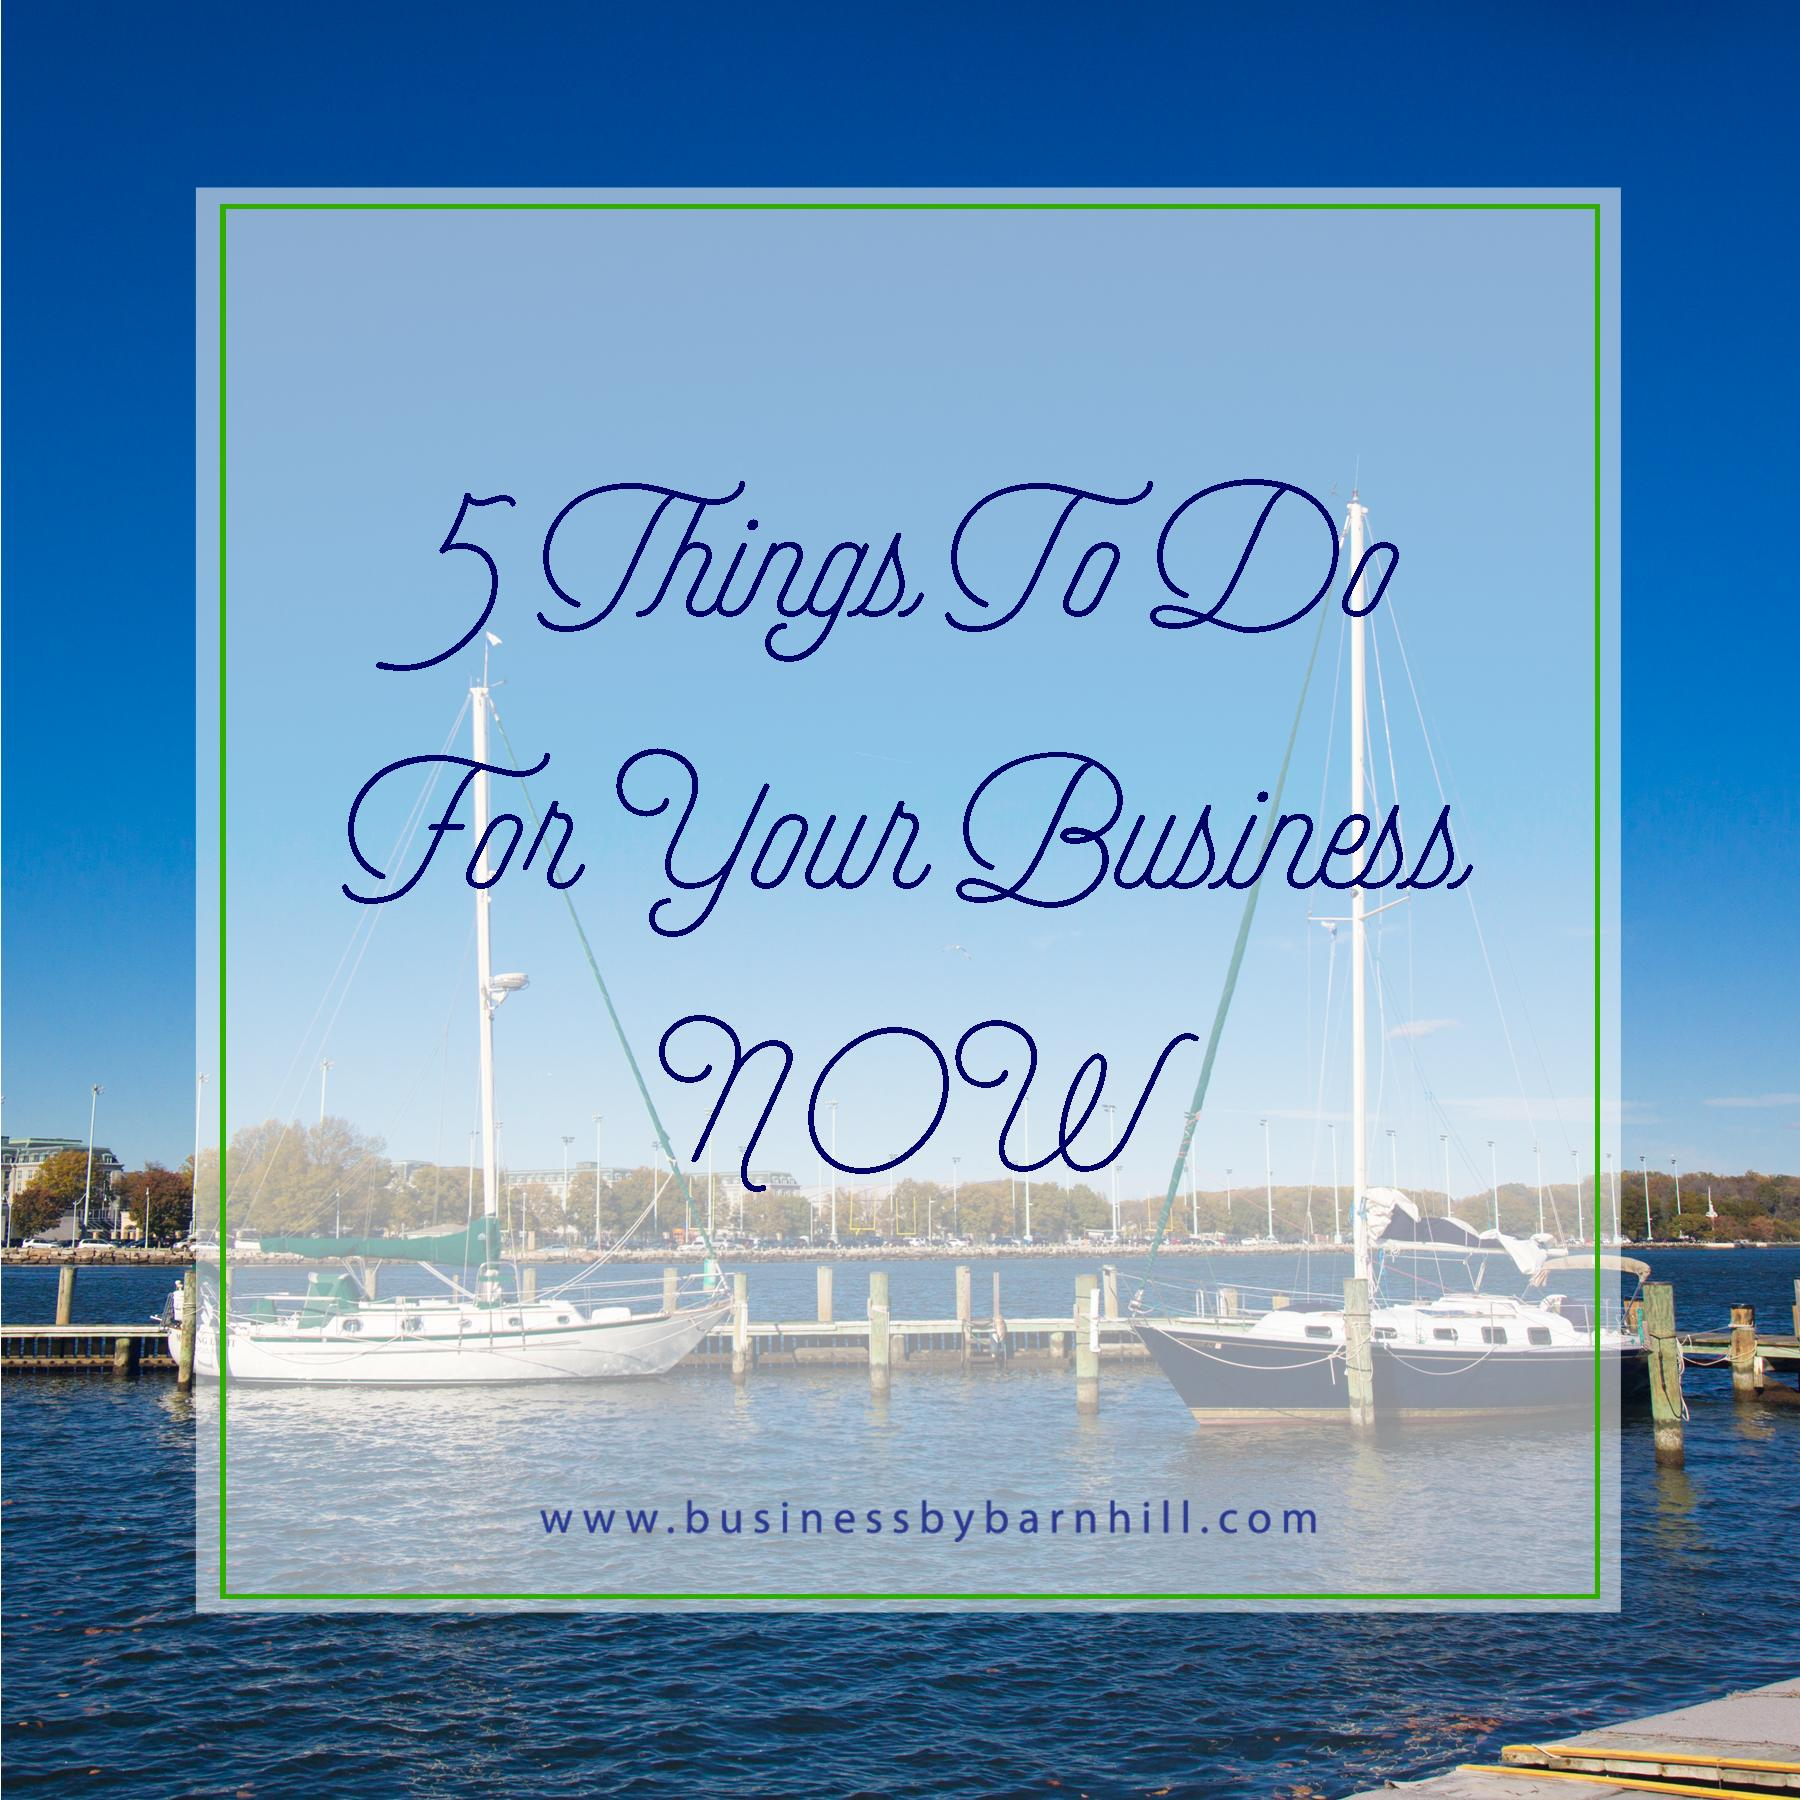 business by barnhill 5 things to do for your business now.jpg